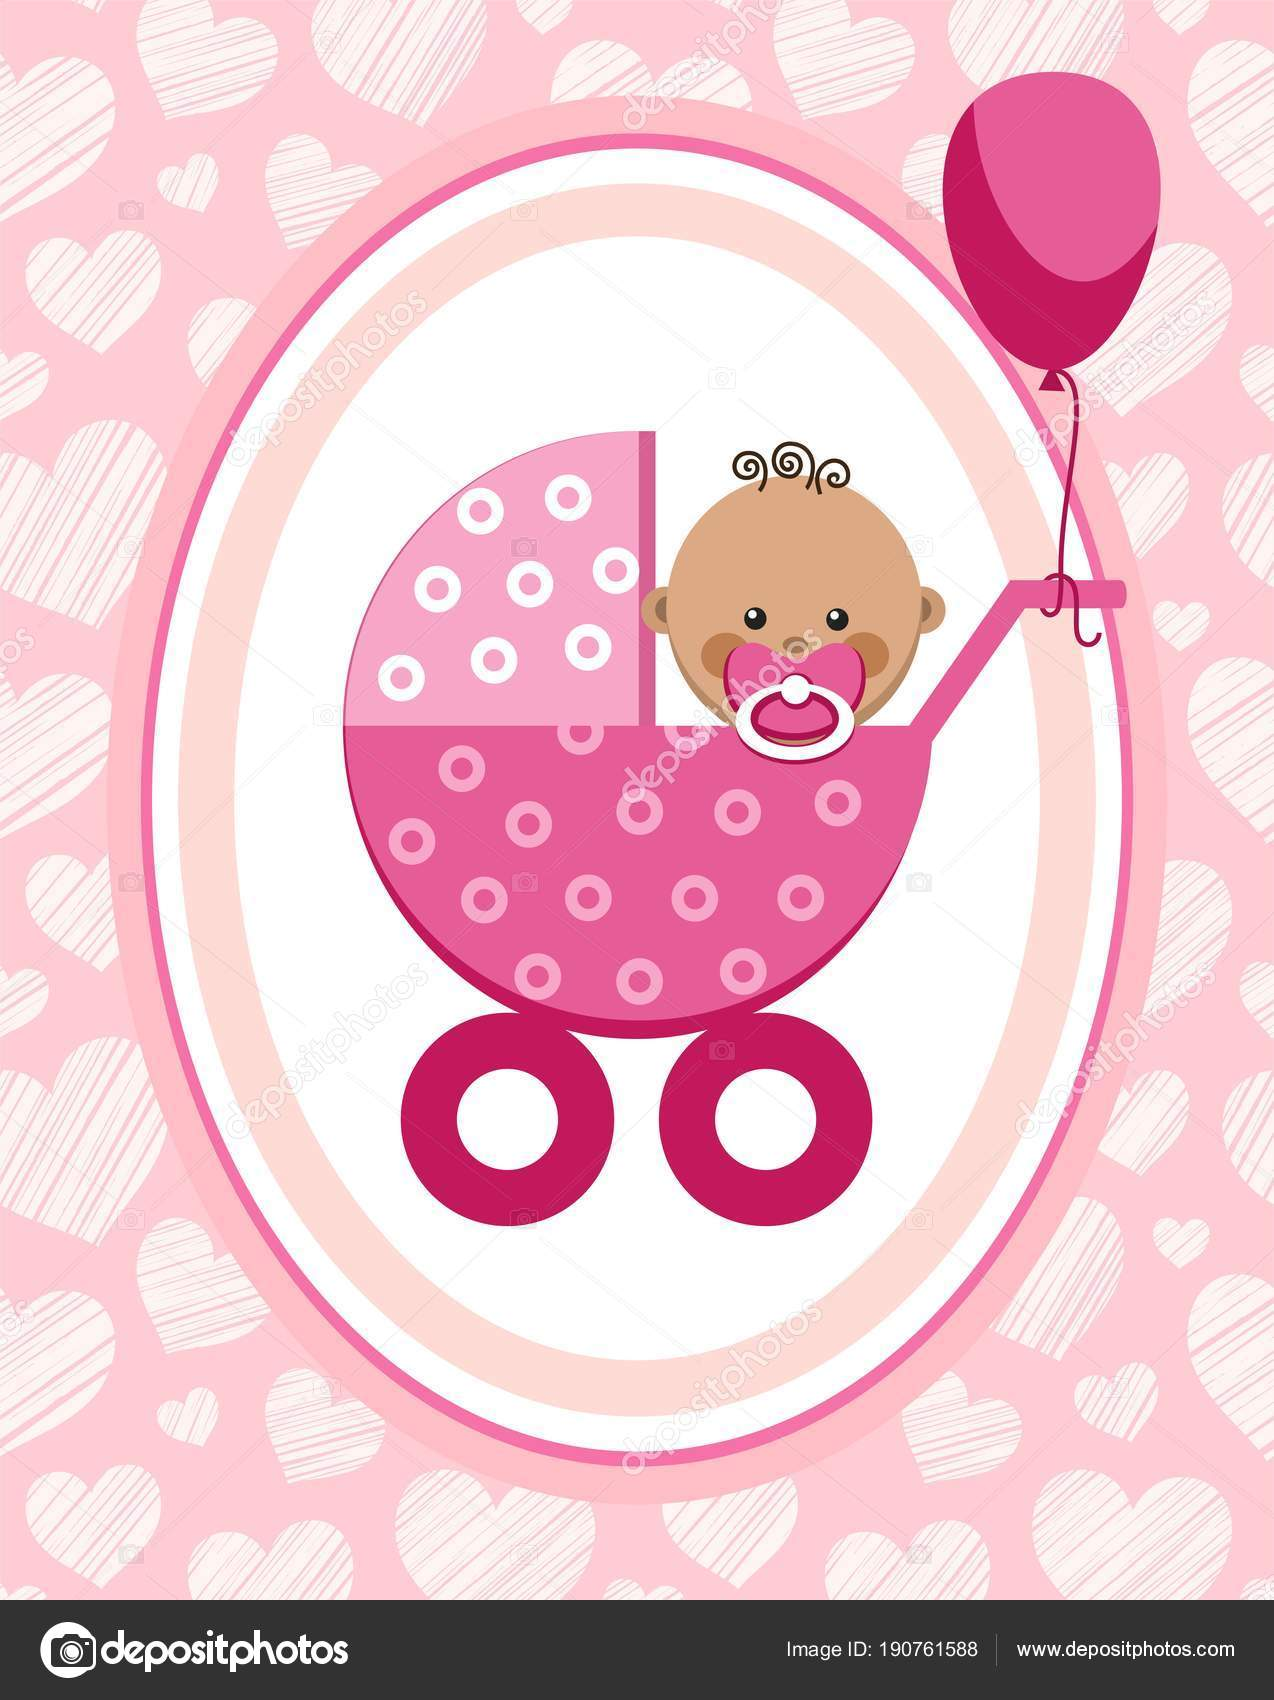 newborn baby girl greeting card africa pink hearts vector a little girl in a pink stroller a pink balloon is tied to the stroller color flat card